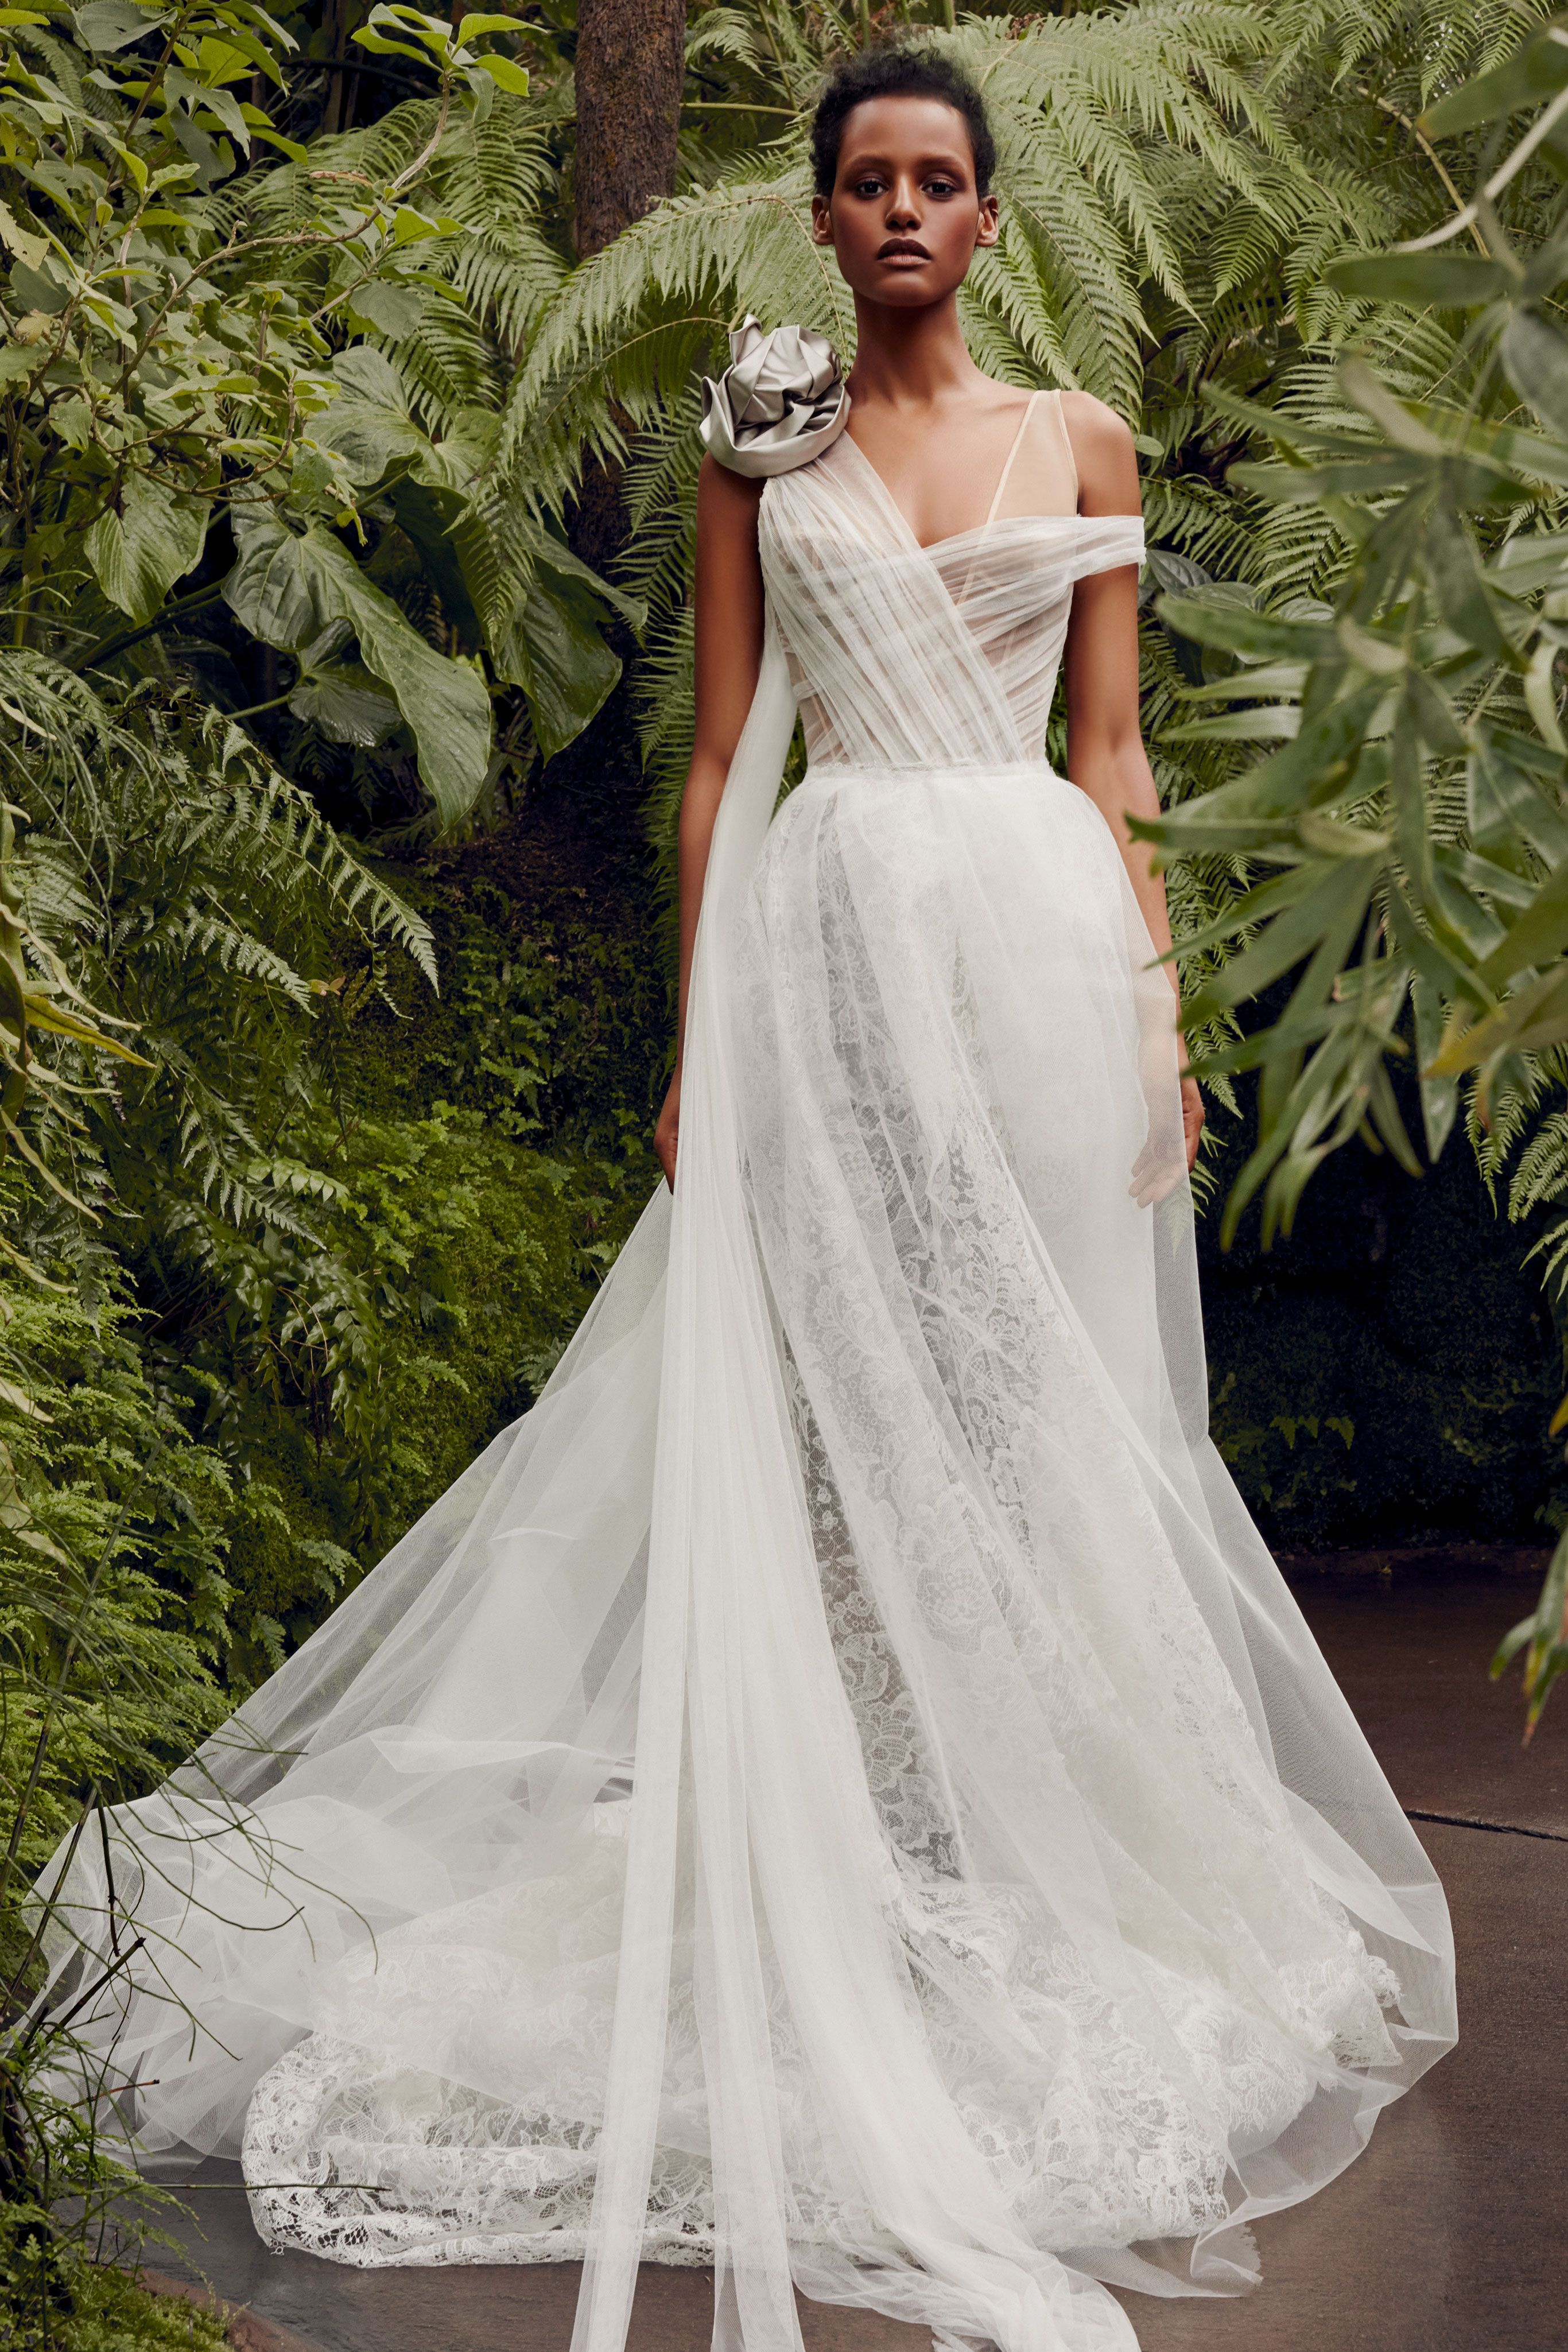 dc440e467c11 Vera Wang Bride Spring 2020 - Vera Wang Bridal Spring 2020 Collection